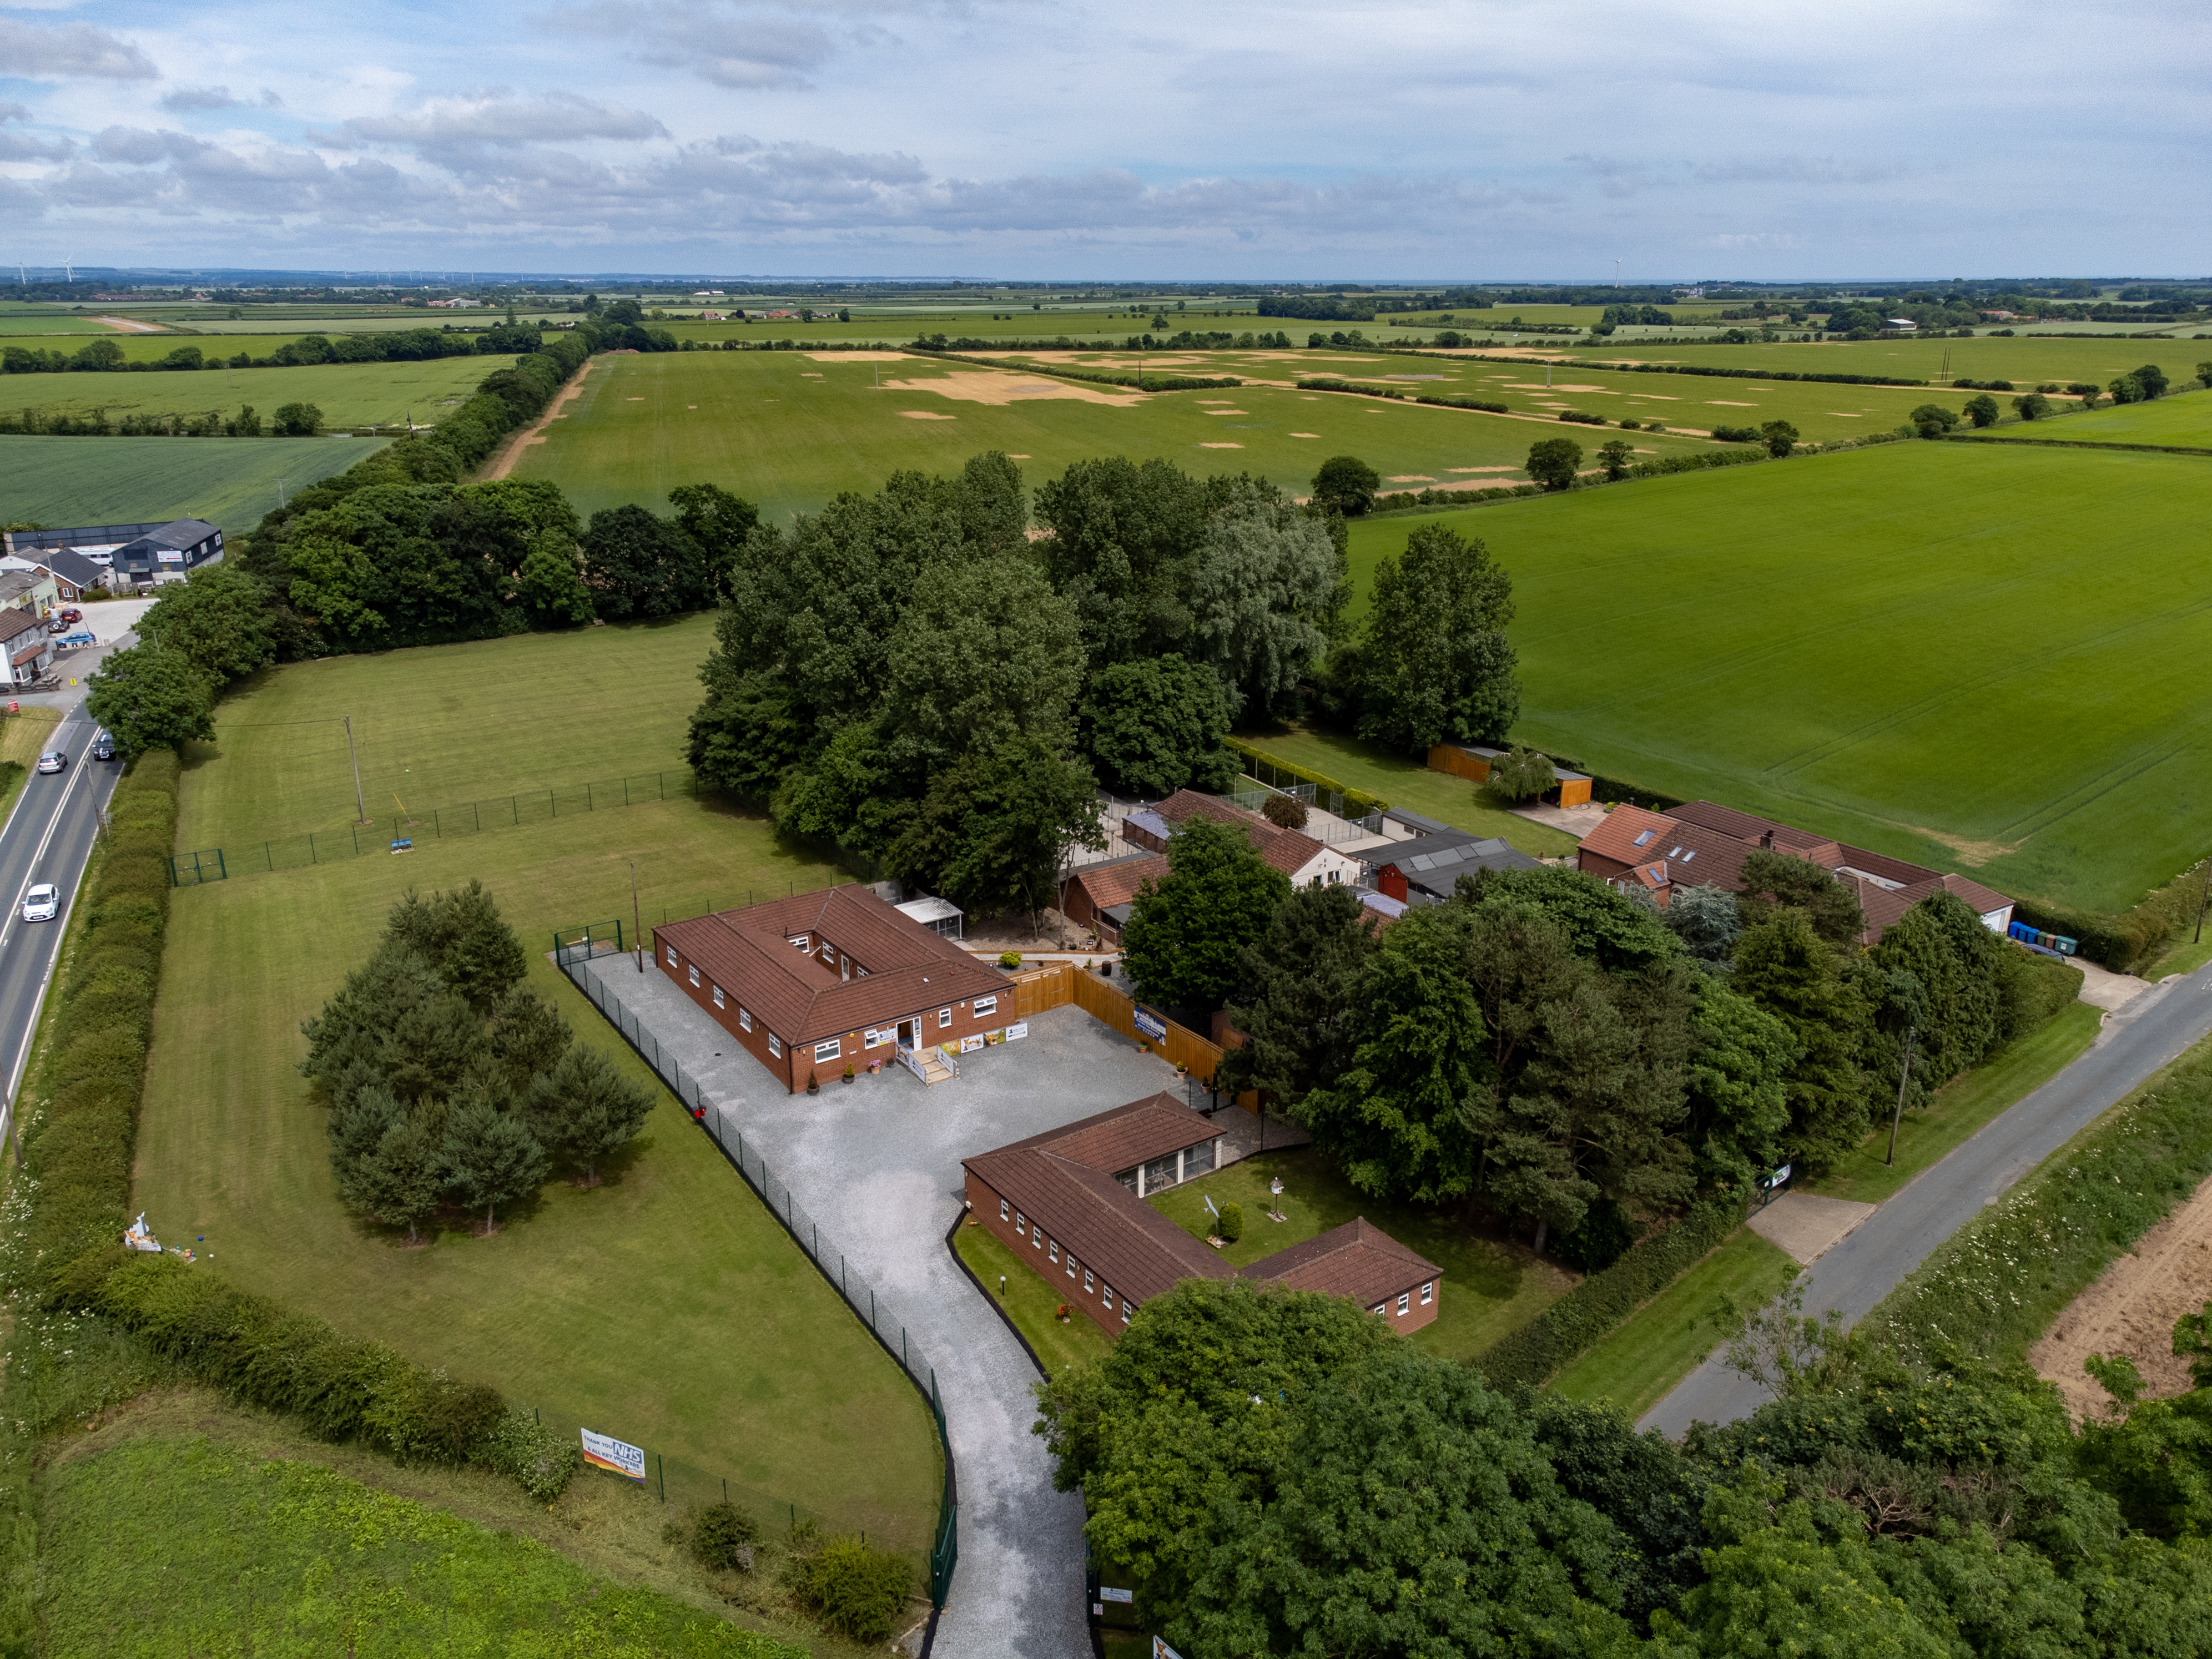 Warley Cross Kennels and Cattery From The Air